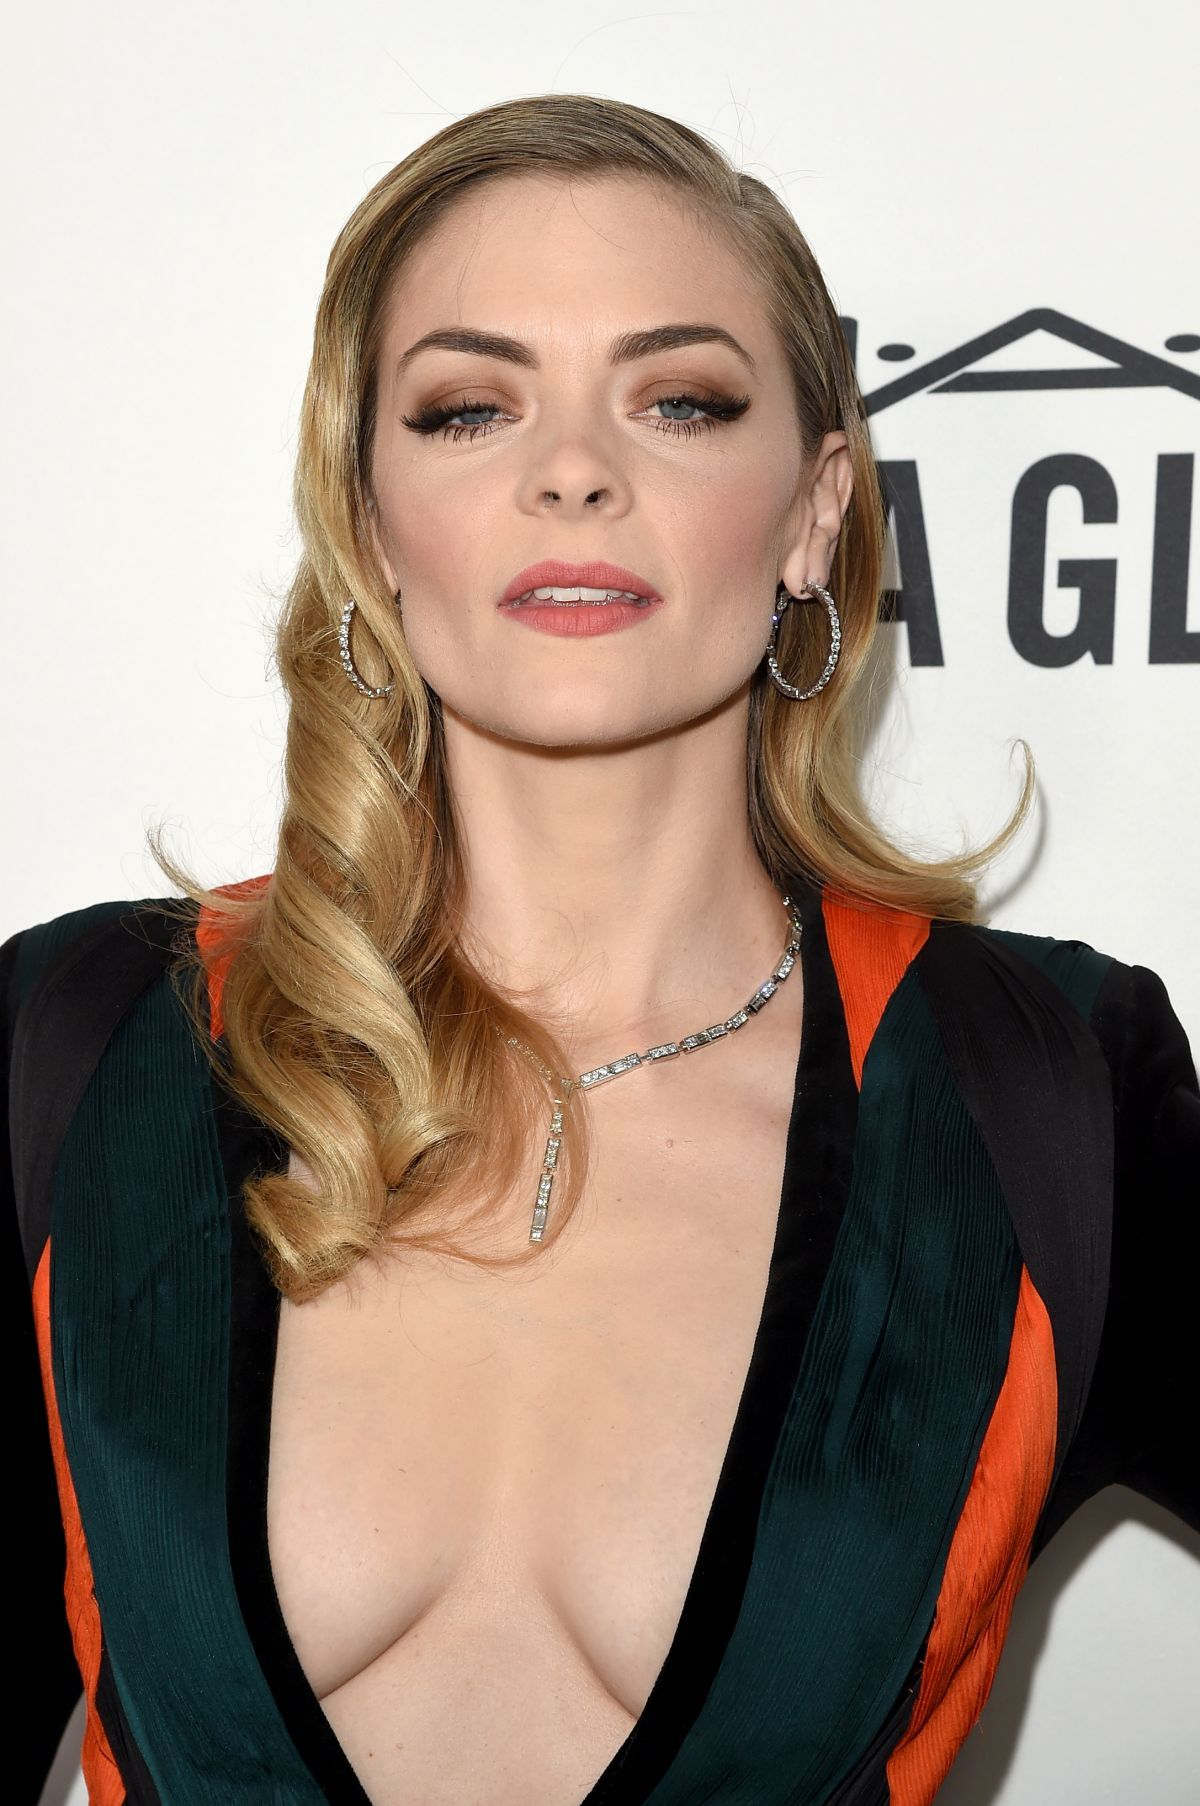 Hacked Jaime King naked (89 photo), Sideboobs